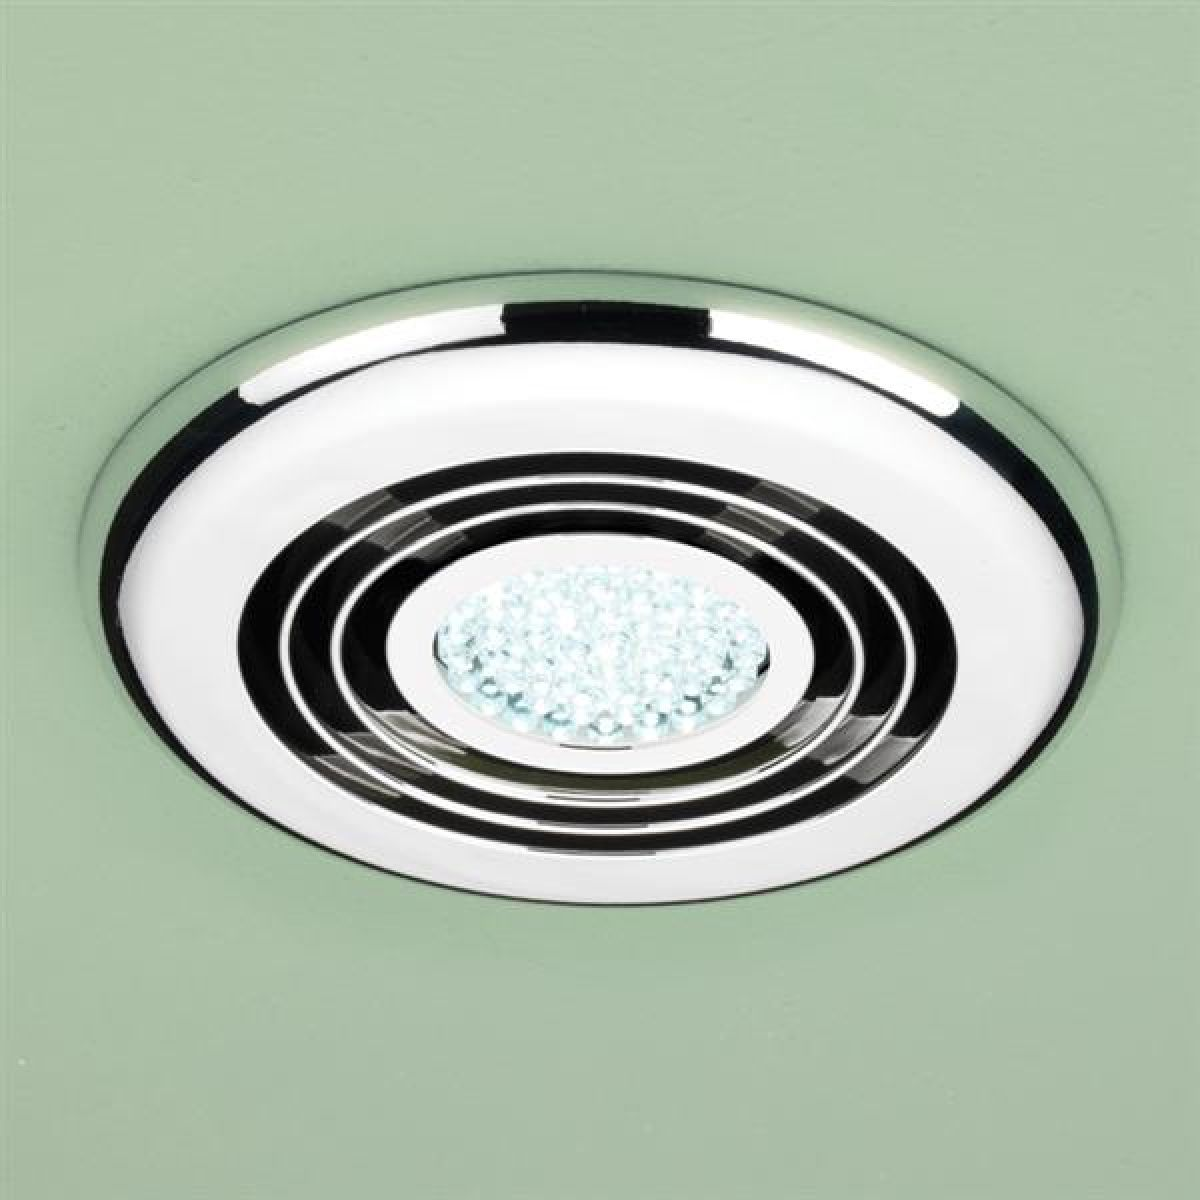 HiB Turbo Cool LED Inline Bathroom Extractor Fan in Chrome